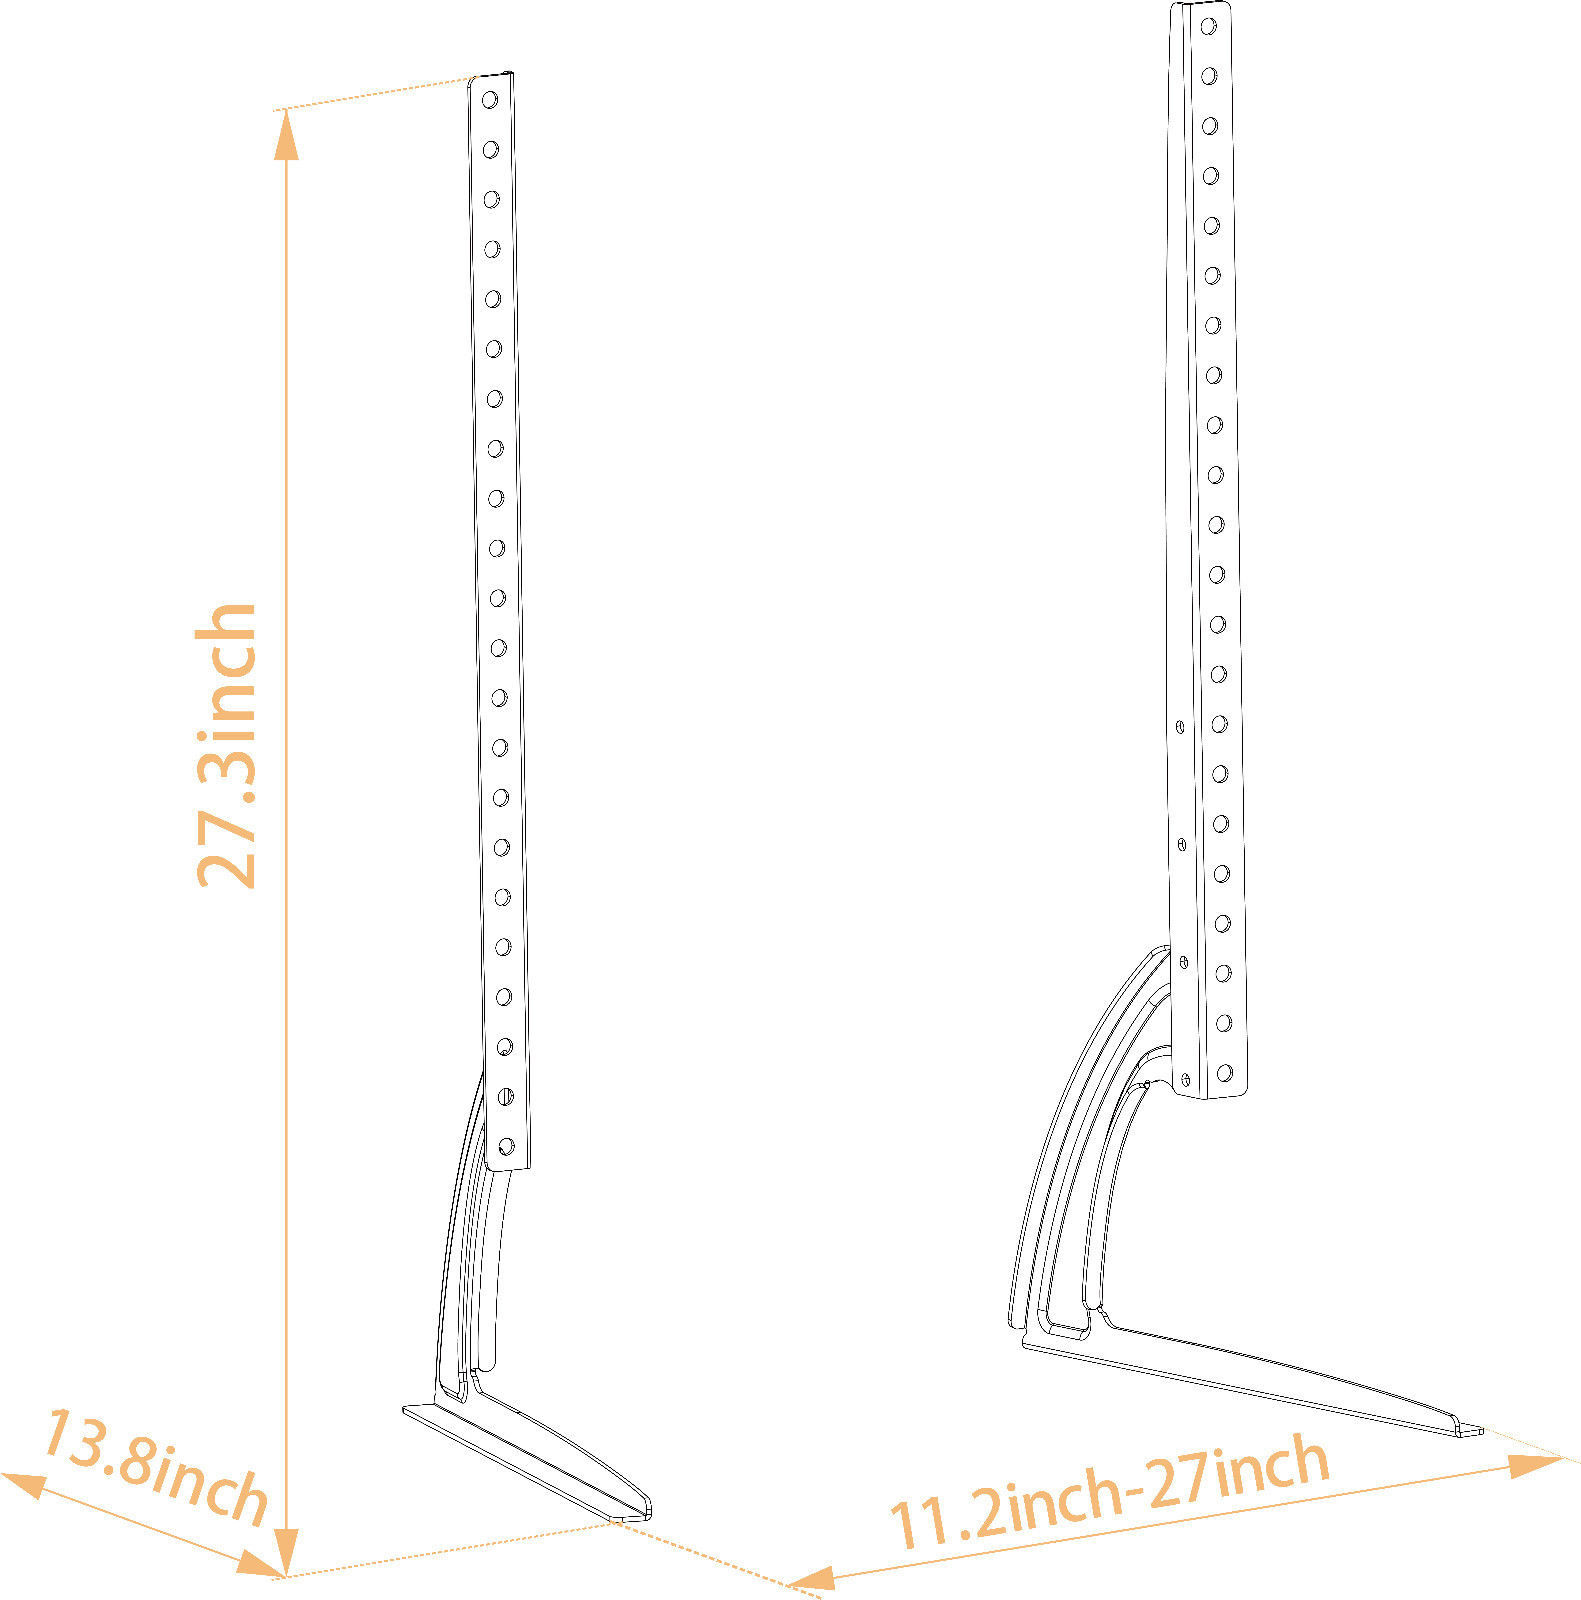 Universal Table Top TV Stand Legs for Sony KDL-55EX621 Height Adjustable